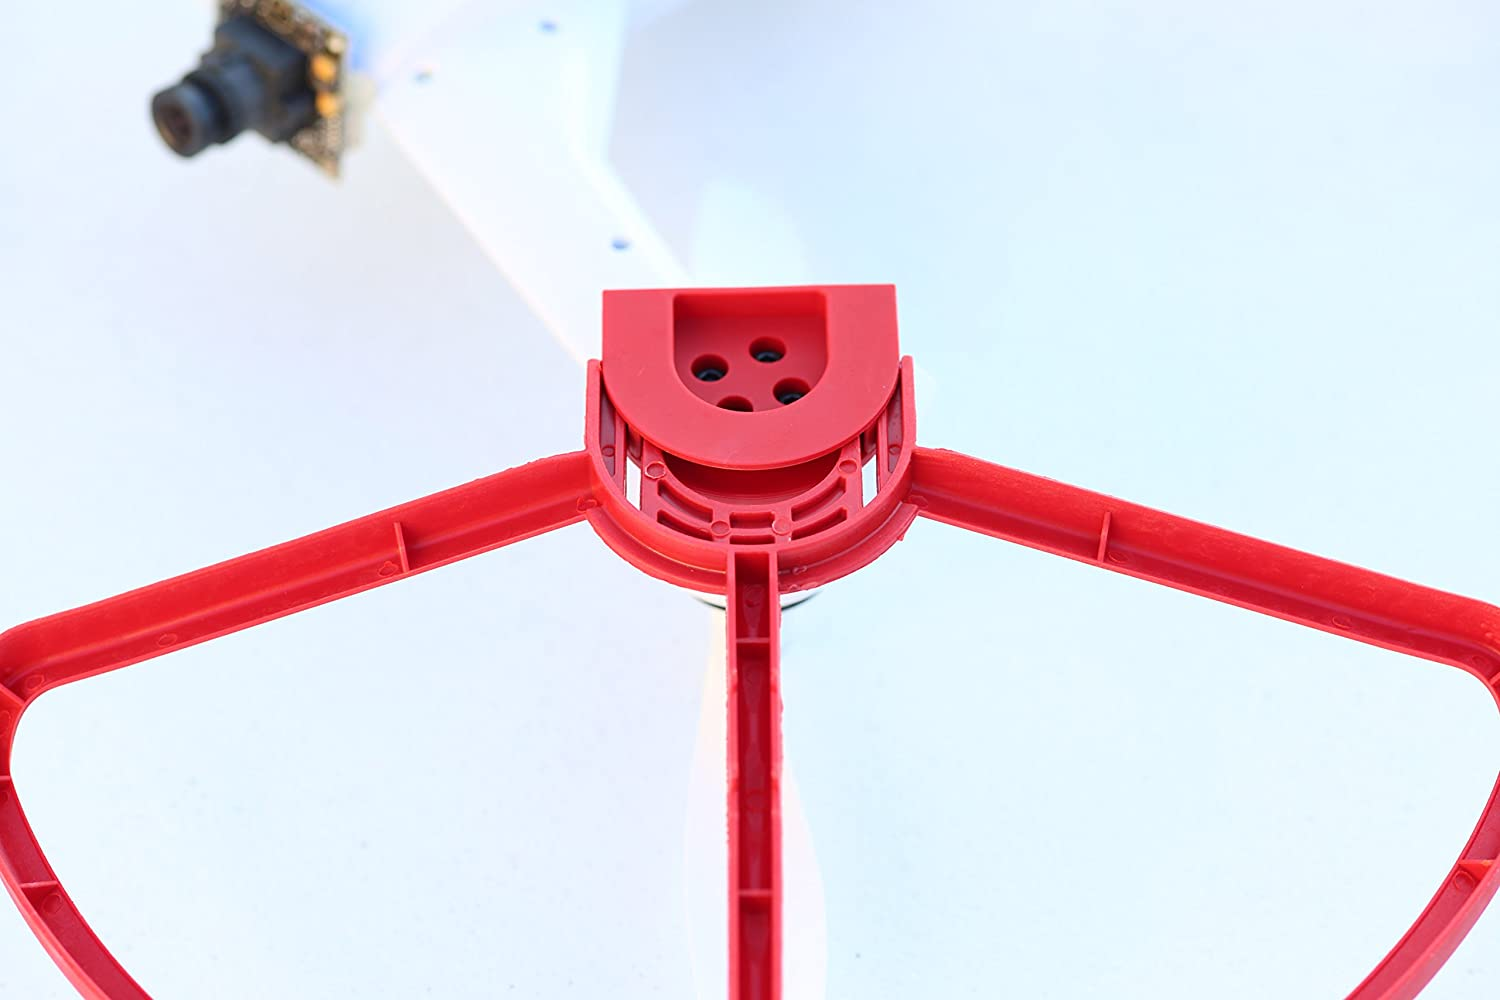 SummitLink Blade 350 QX 1 QX 2 QX 3 Snap on//off Prop Guards 2 Red 2 White Tool Free Quick Mount Quick Release Disconnect